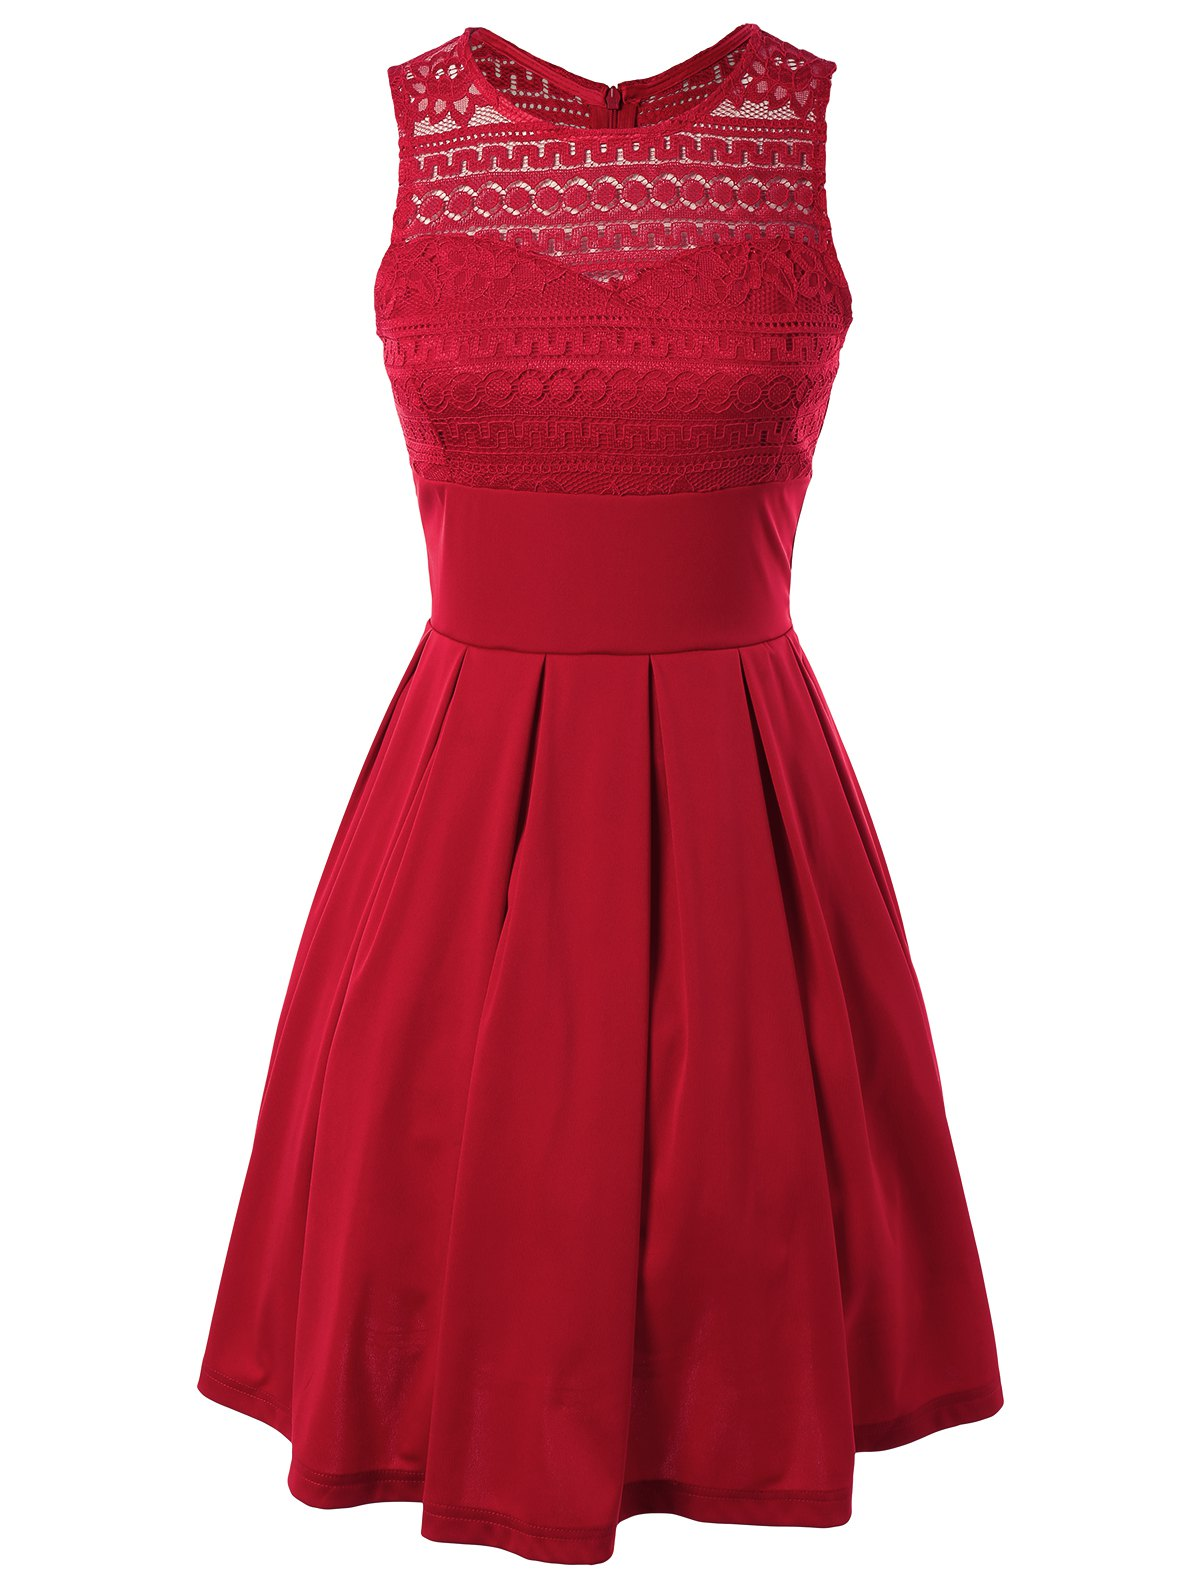 Sleeveless Lace Splicing Pleated Dress - XL RED